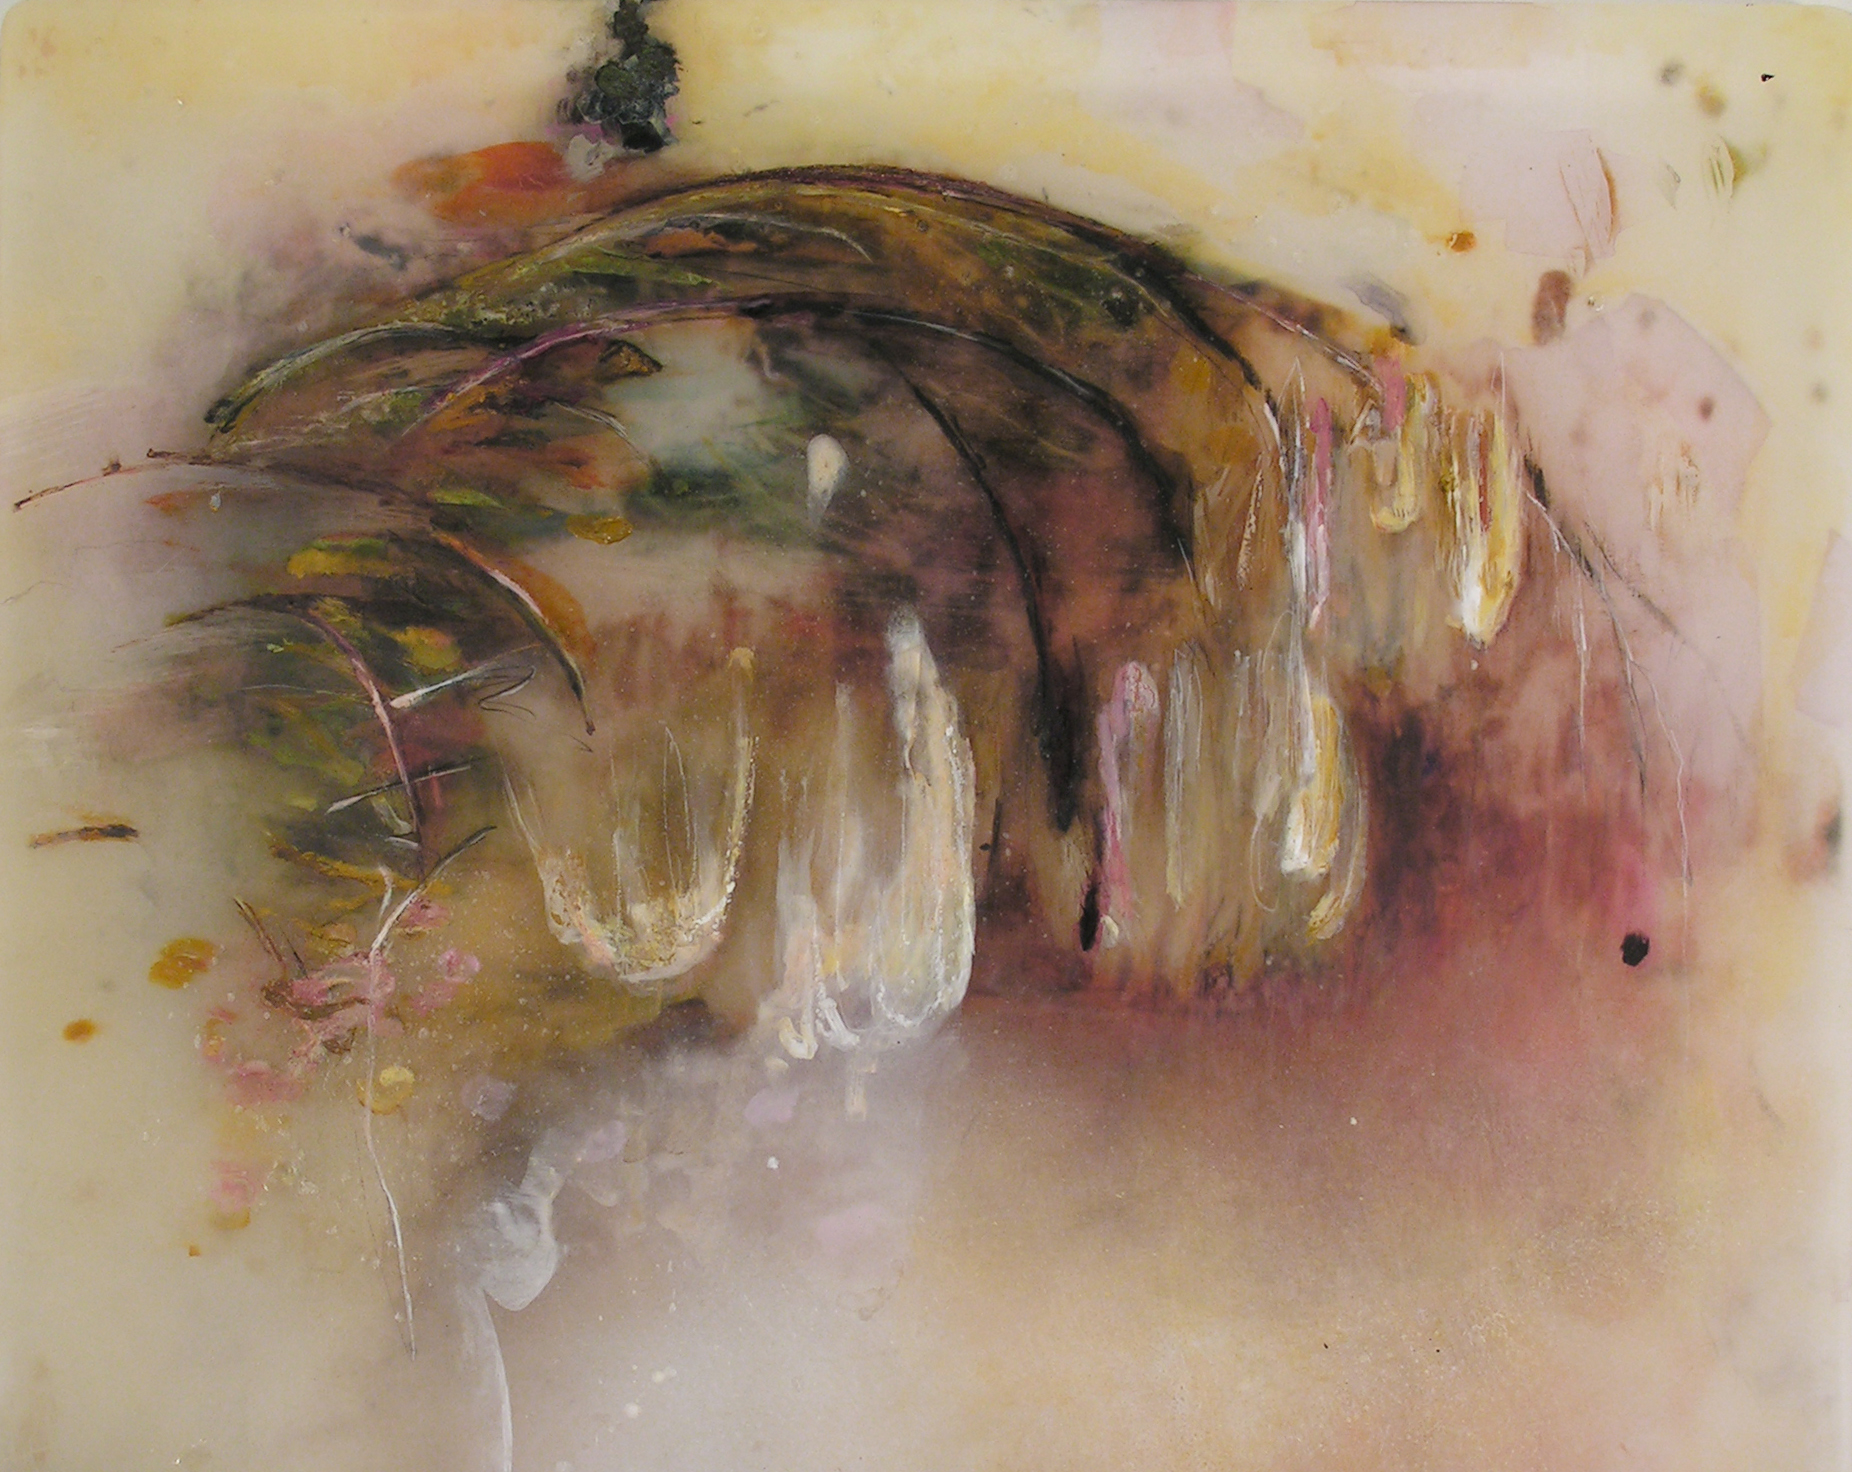 Mid Russet,  2009  Oil paint, oil bar, acrylic, and prismacolor on plexi 26 x 31 x 1 inches